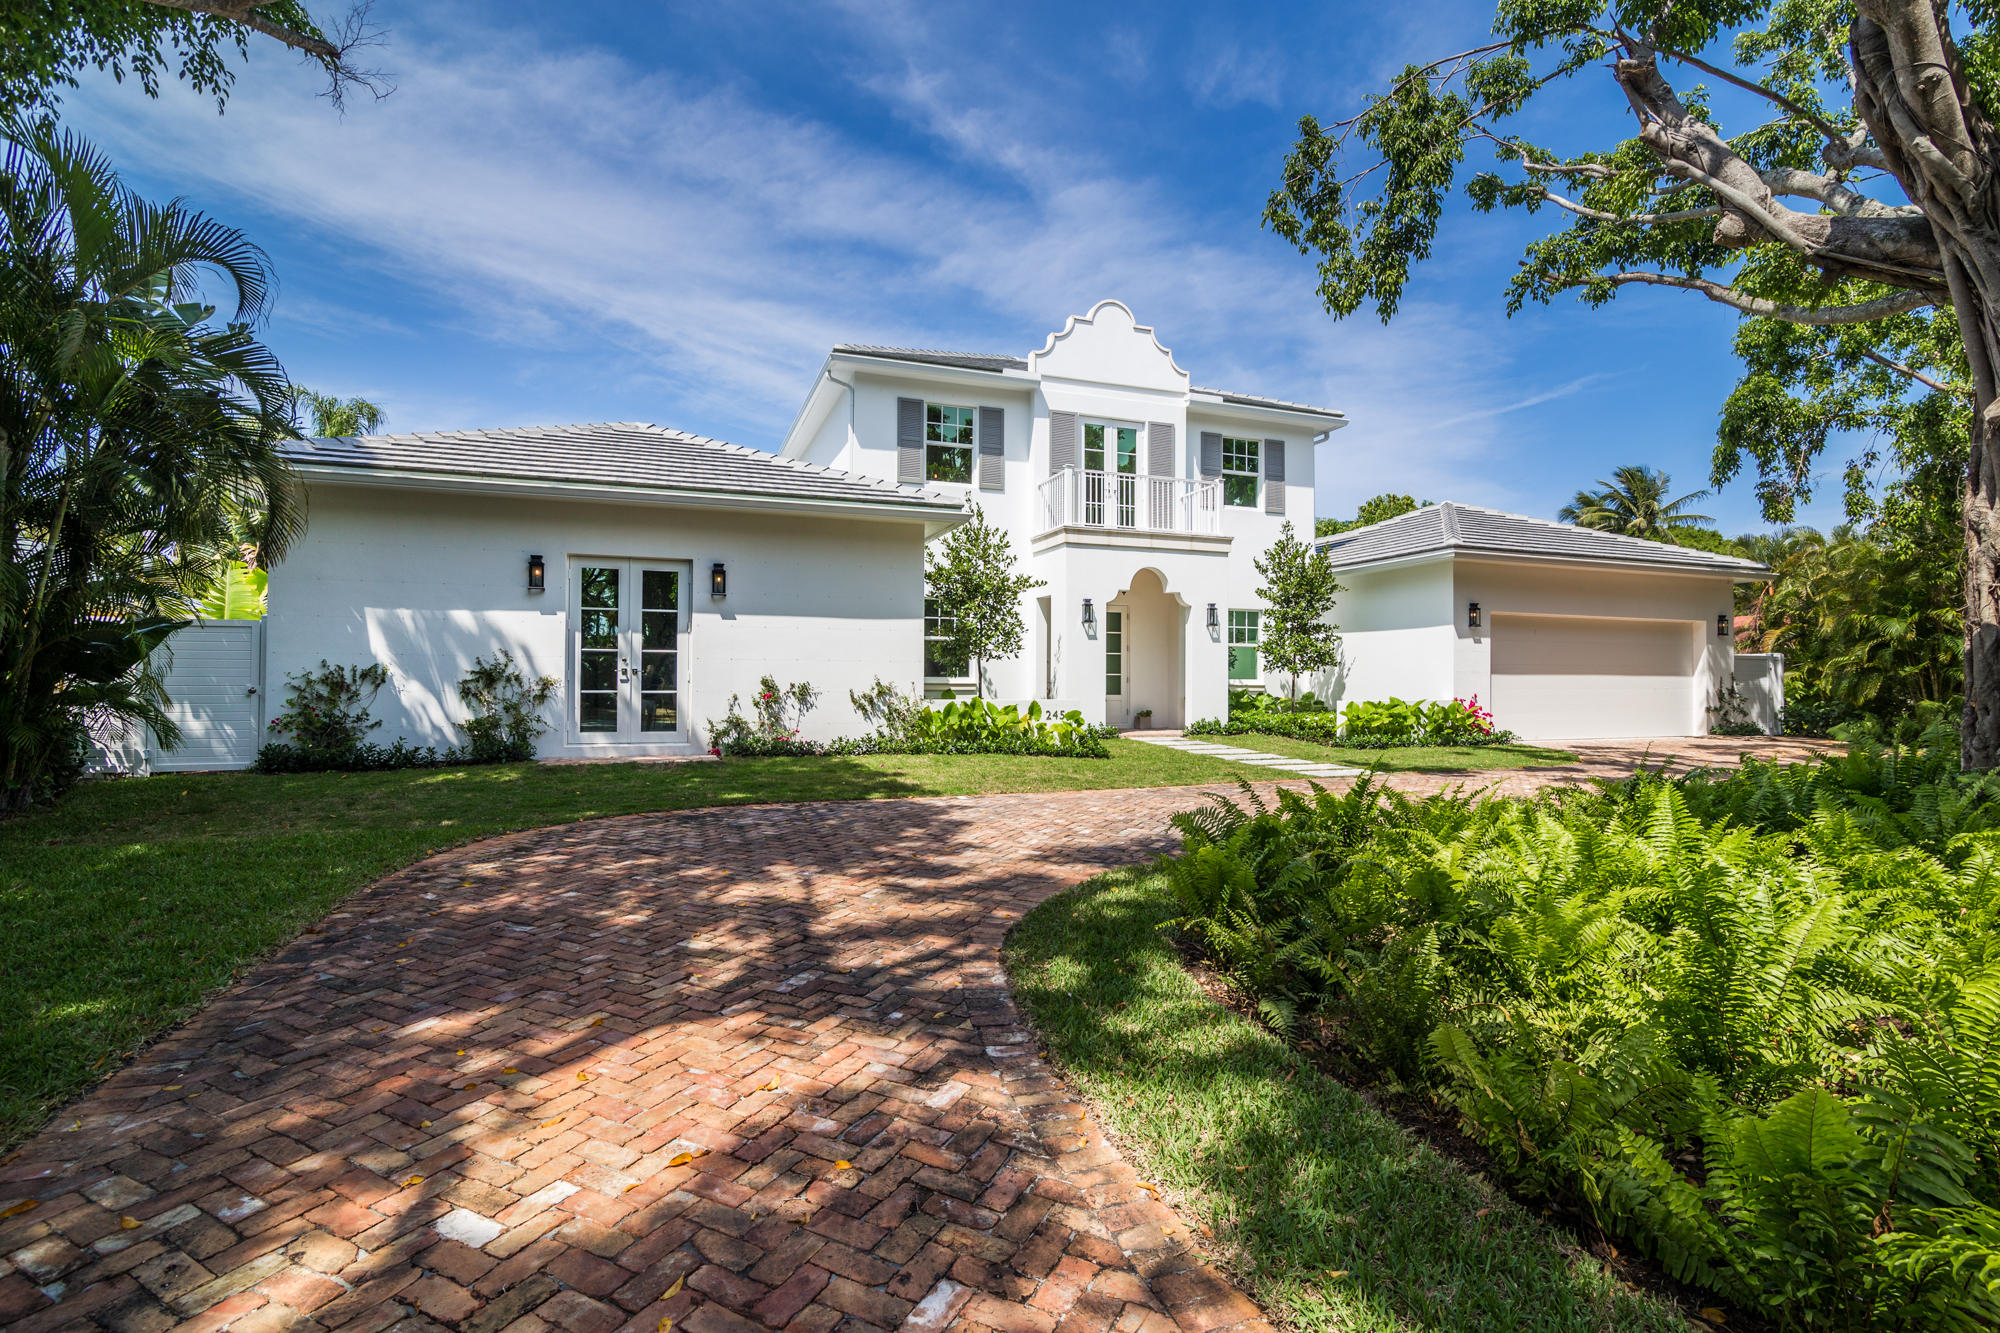 245 Essex, West Palm Beach, Florida 33405